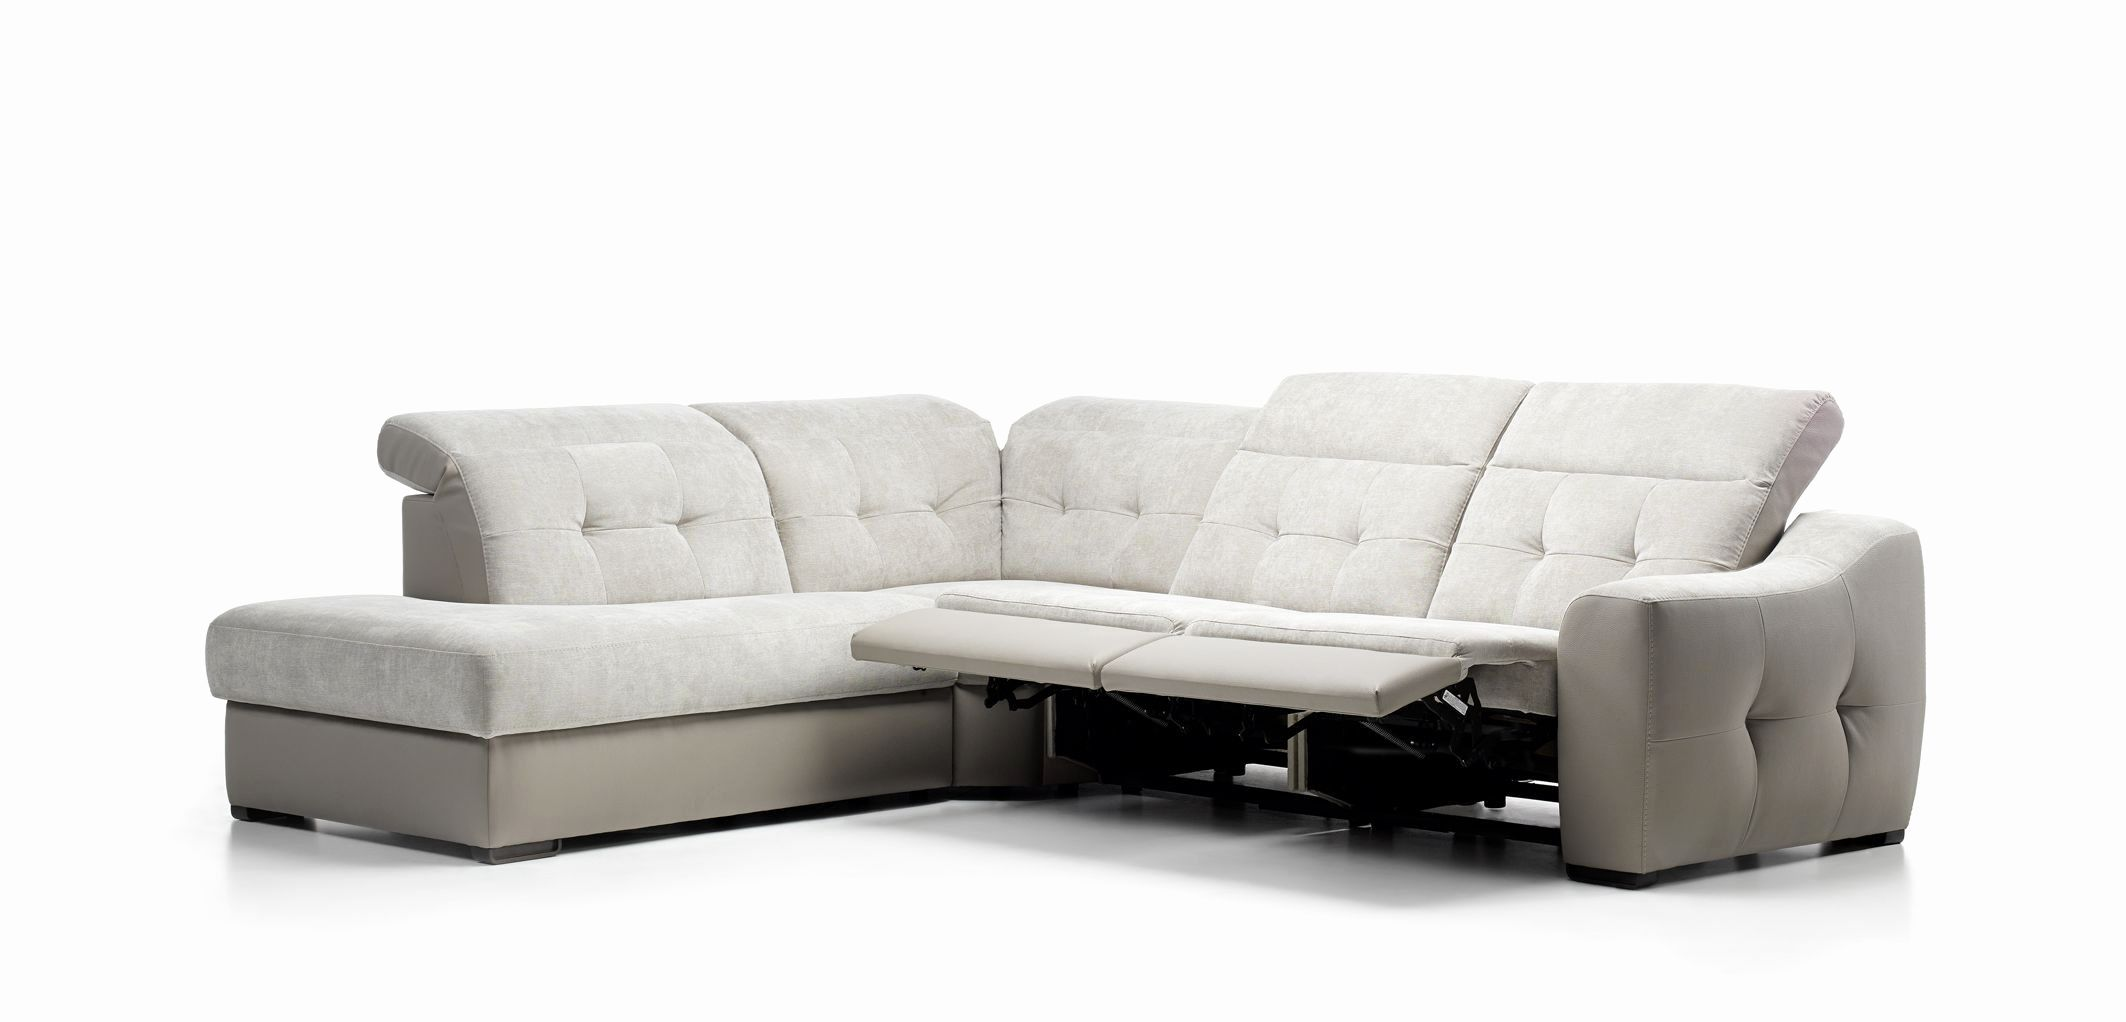 Beautiful Reclining Modern Sofa Pictures Reclining Modern Sofa Unique Modern Reclining Sectional Comfortable Living Room Furniture Contemporary Sectional Sofa